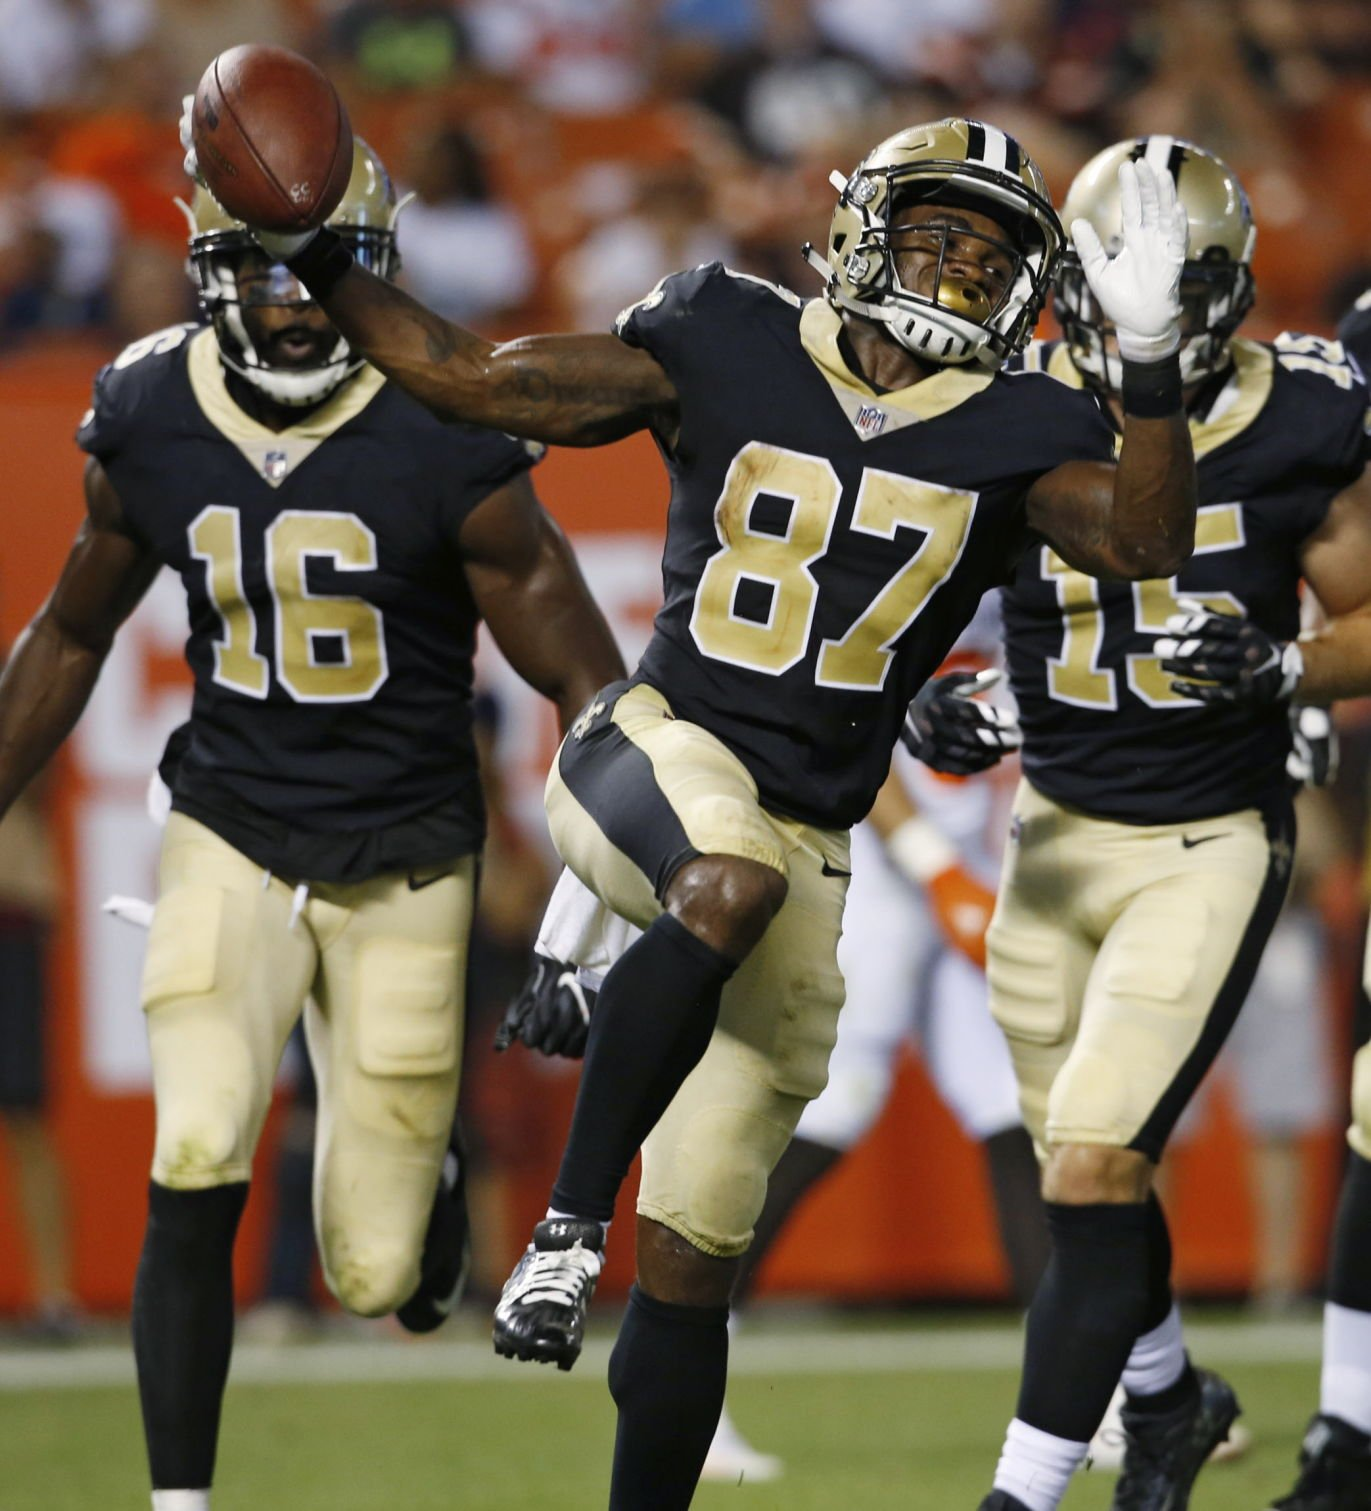 Saints rookies to watch in first preseason game August 10 vs. Browns